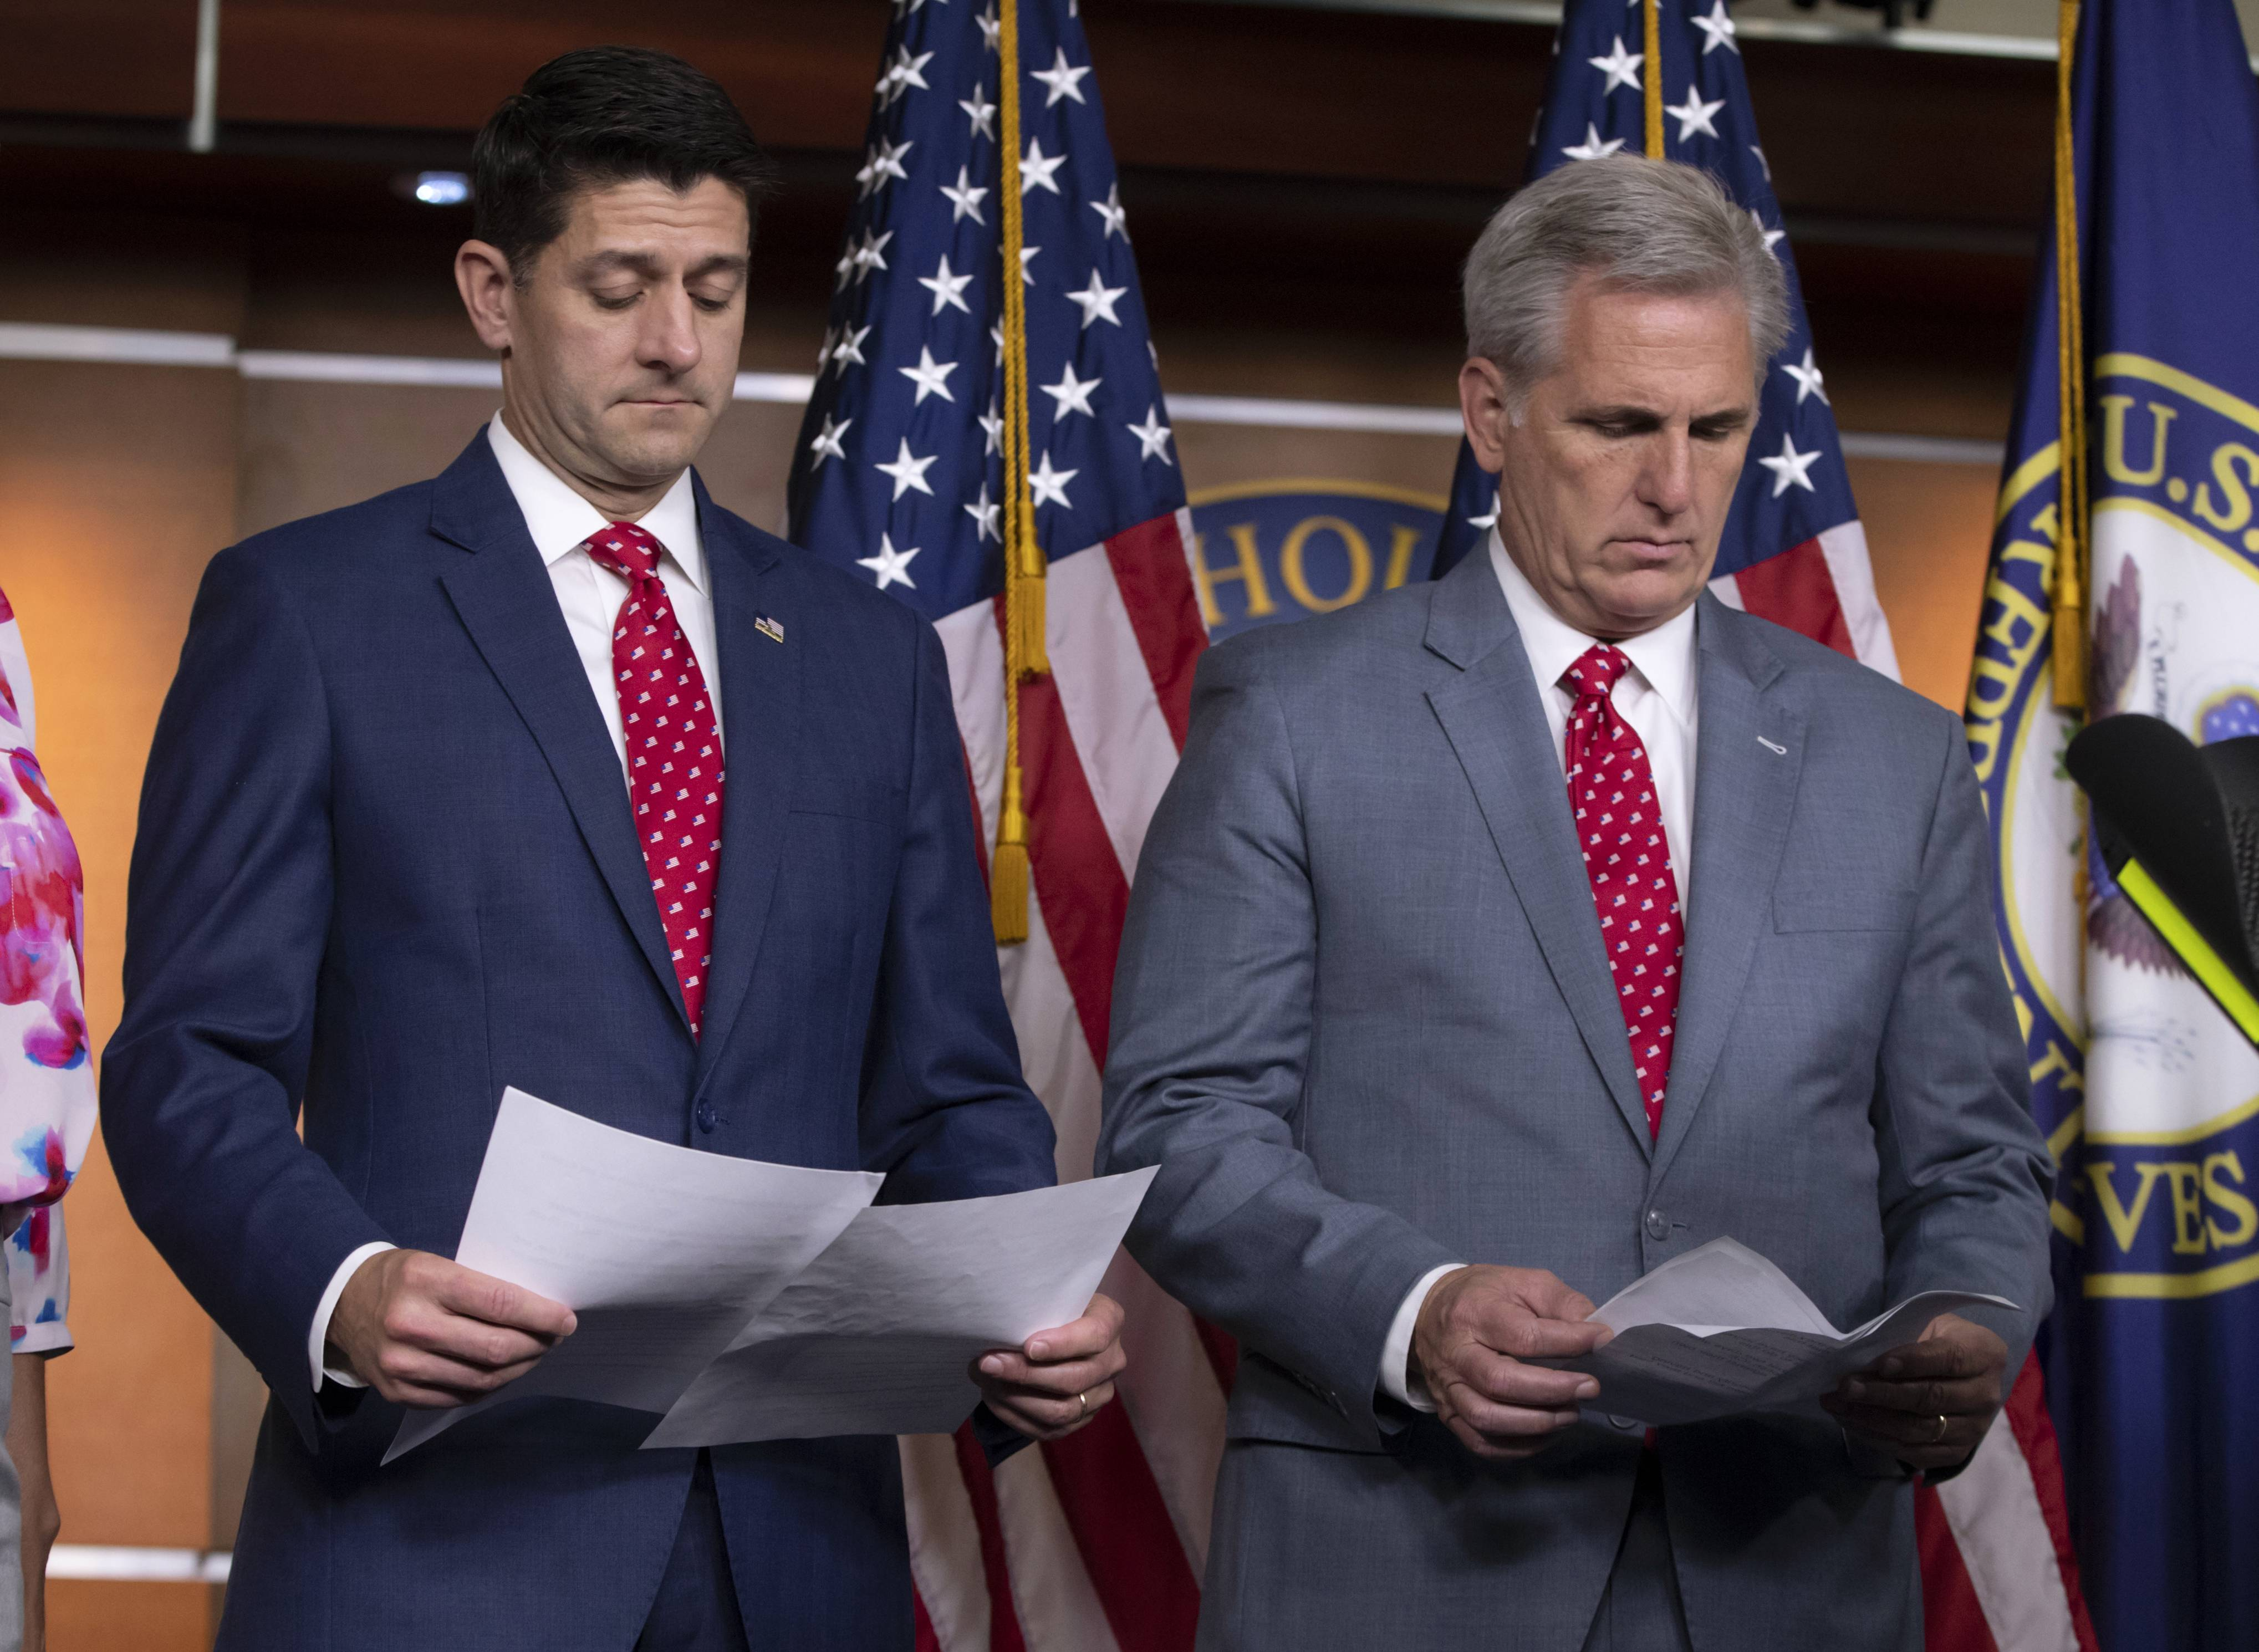 Speaker of the House Paul Ryan, R-Wis., left, and Majority Leader Kevin McCarthy, R-Calif., review papers Tuesday before answering questions from reporters on Capitol Hill in Washington. Responding to criticism about President Donald Trump and his Helsinki news conference with Russian President Vladimir Putin, Ryan said there should be no doubt that Russia interfered in the 2016 presidential election.